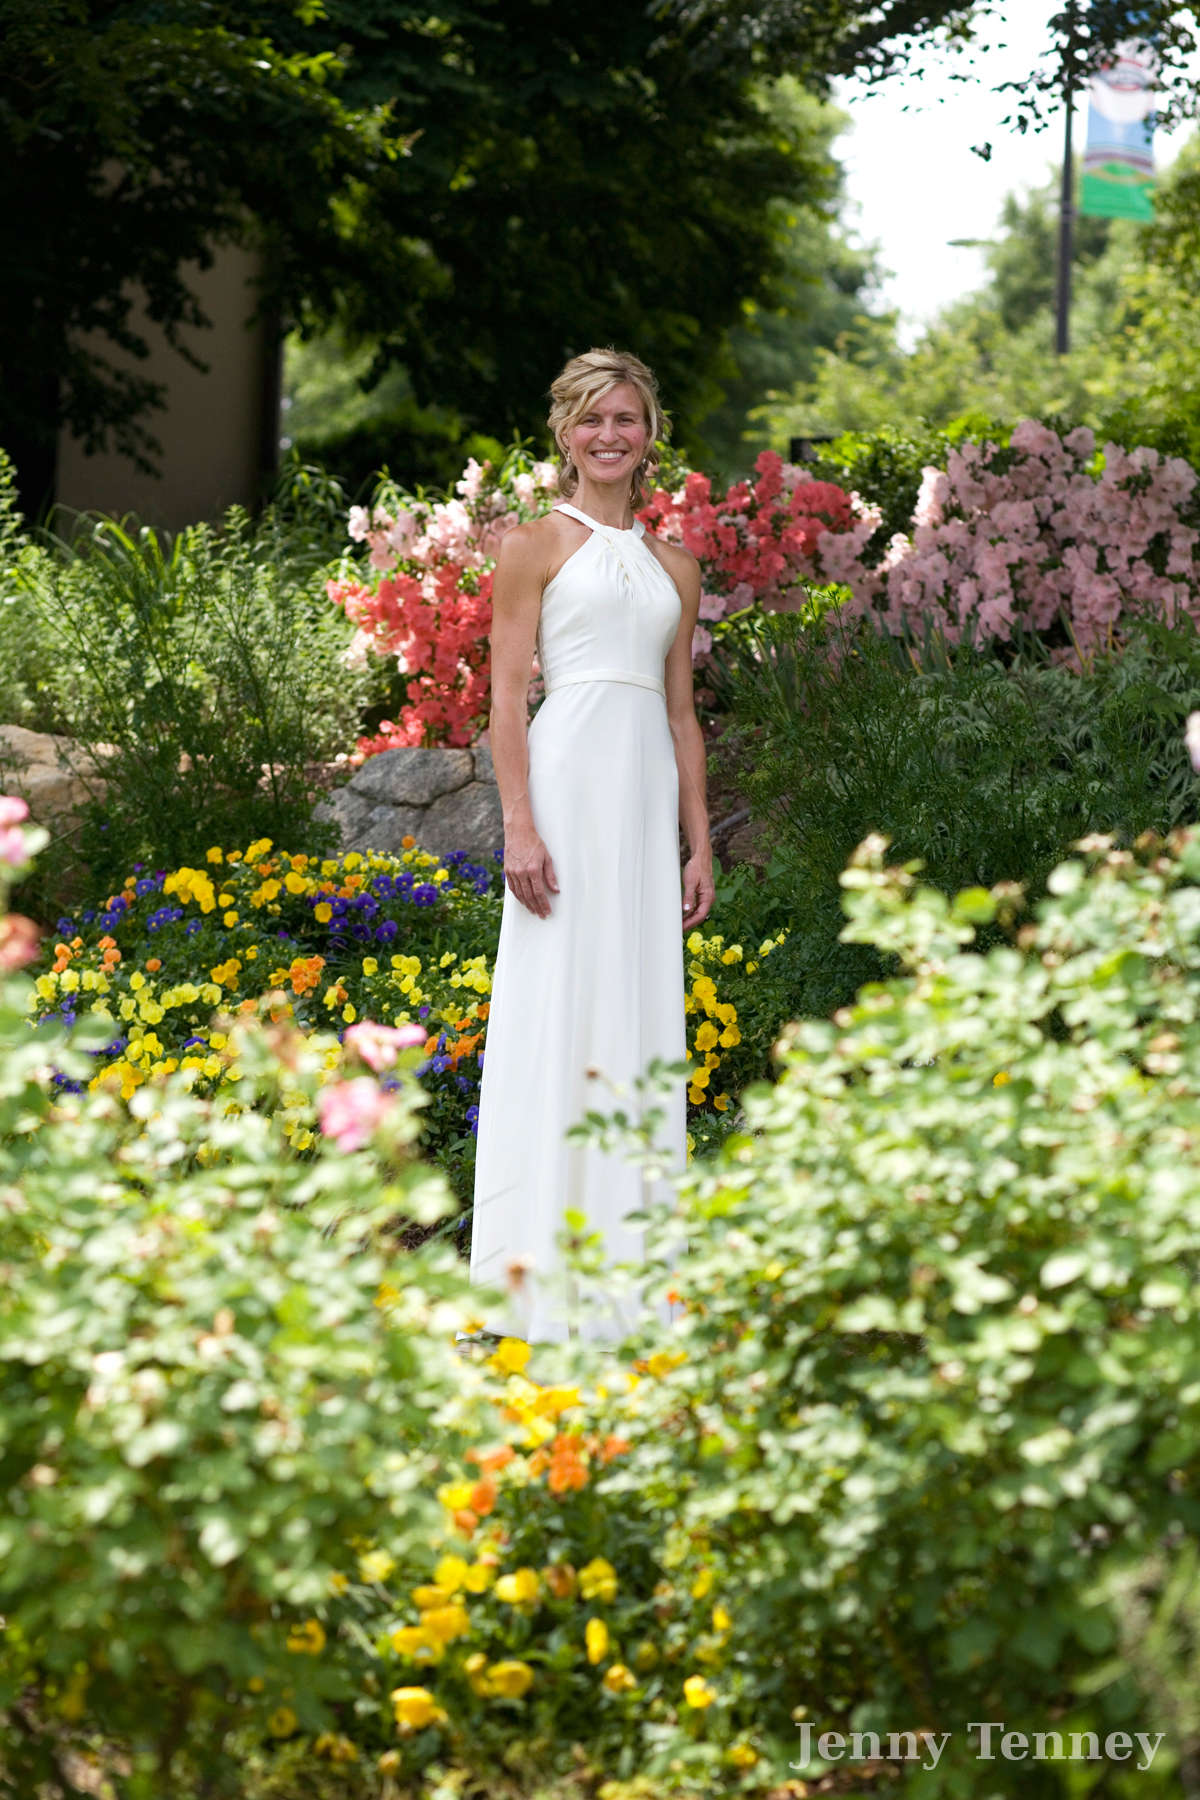 Wedding Photography In Greenville Sc: Kimberly's Bridal Session Greenville, SC Wedding